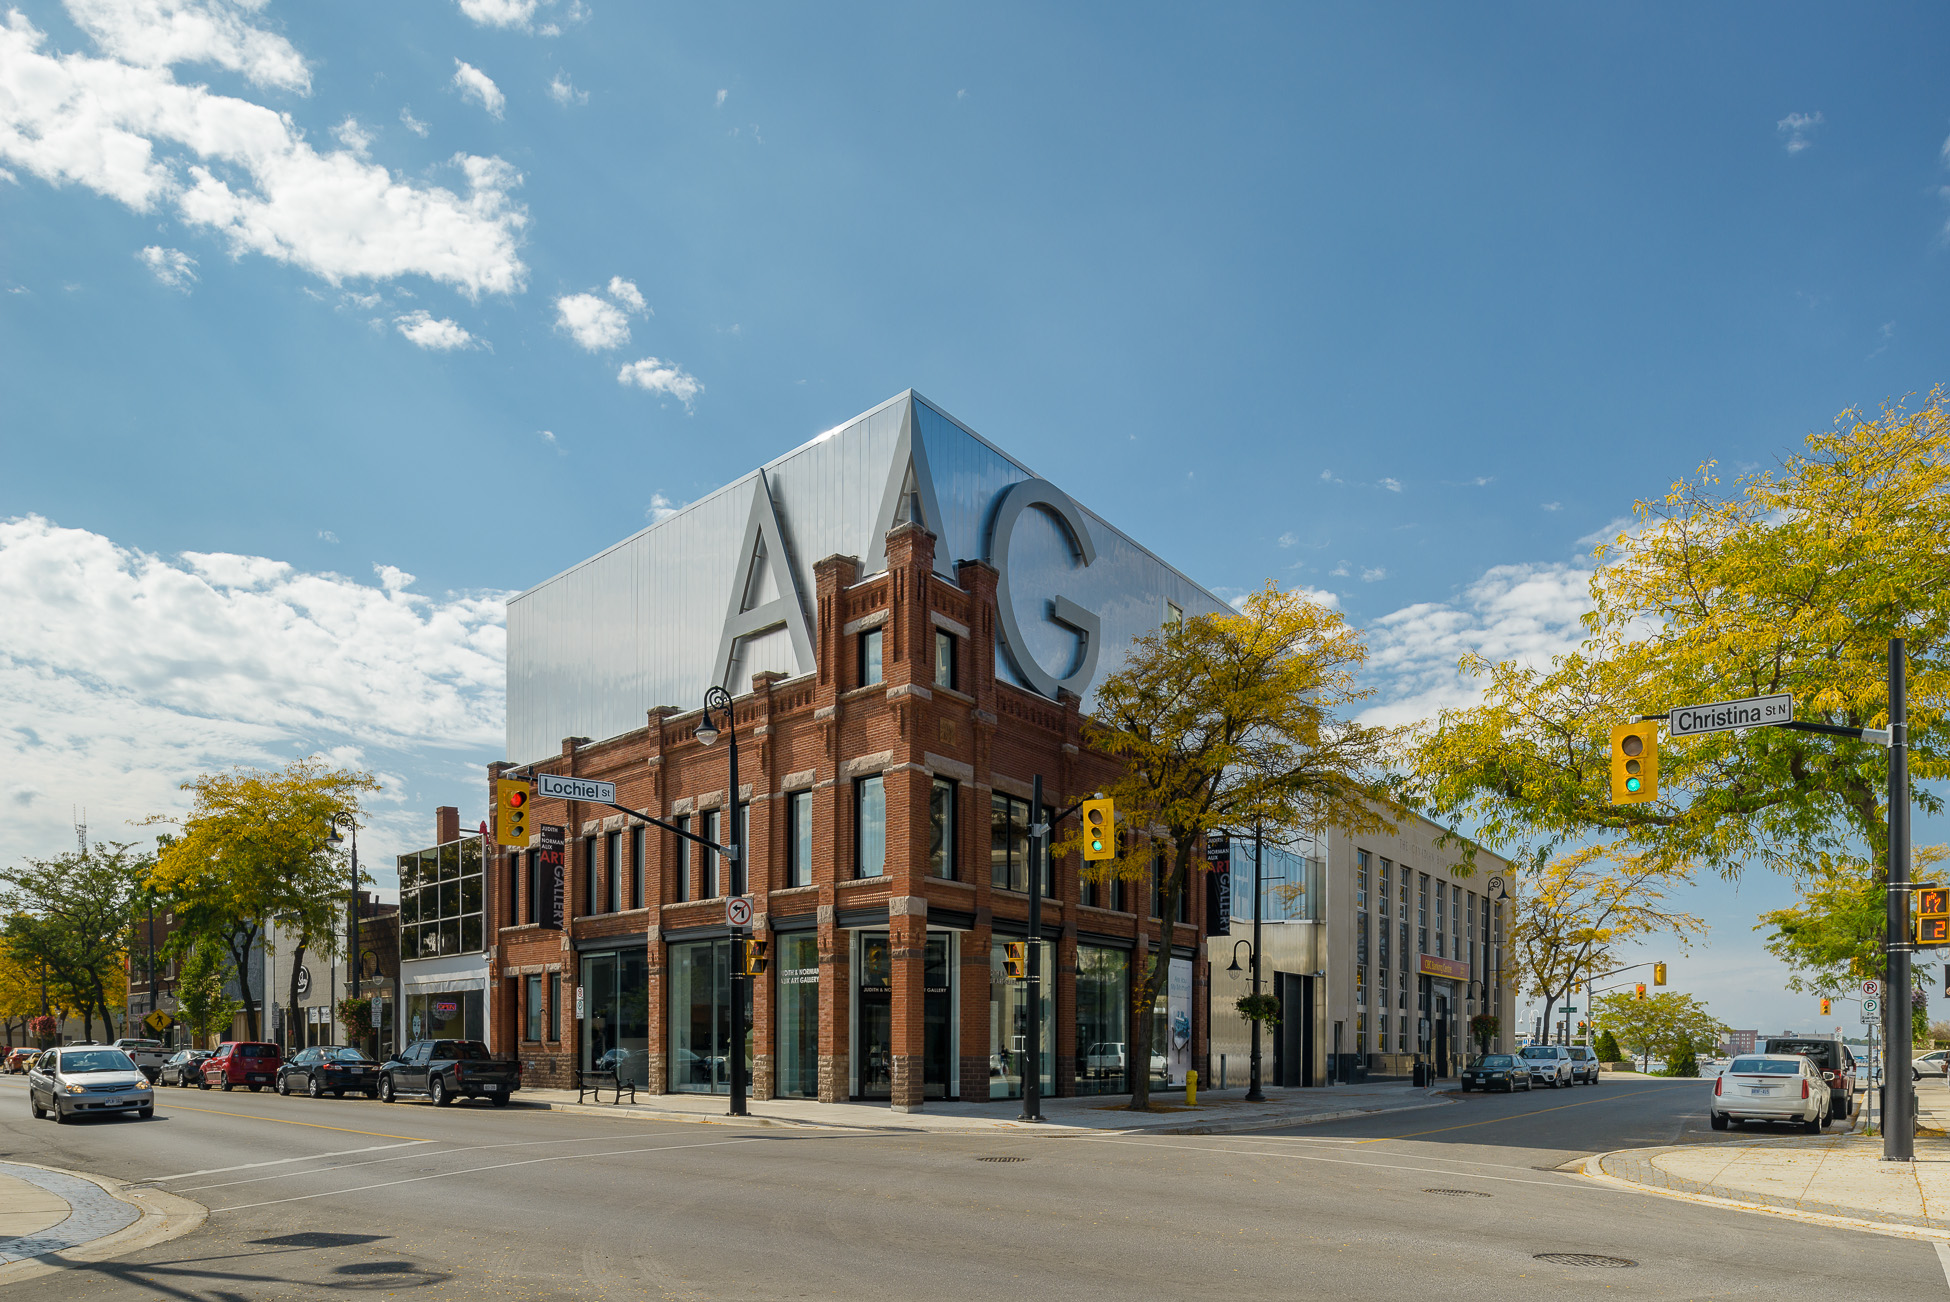 23-Kongats Alix Art Gallery Sarnia Doublespace Toronto Architectural Photography.jpg